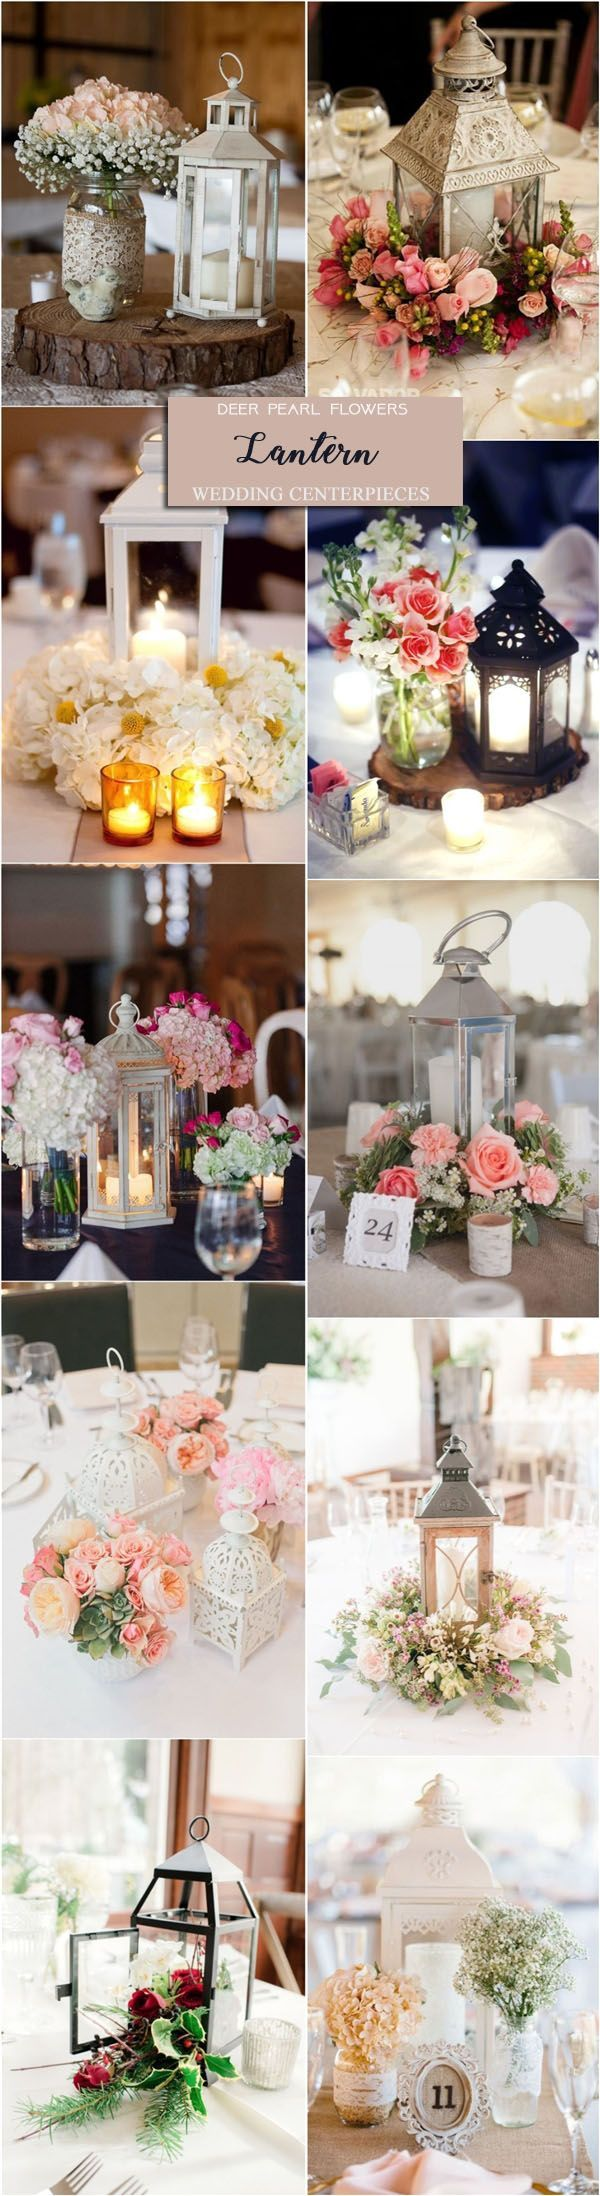 60 Insanely Wedding Centerpiece Ideas Youu0027ll Love